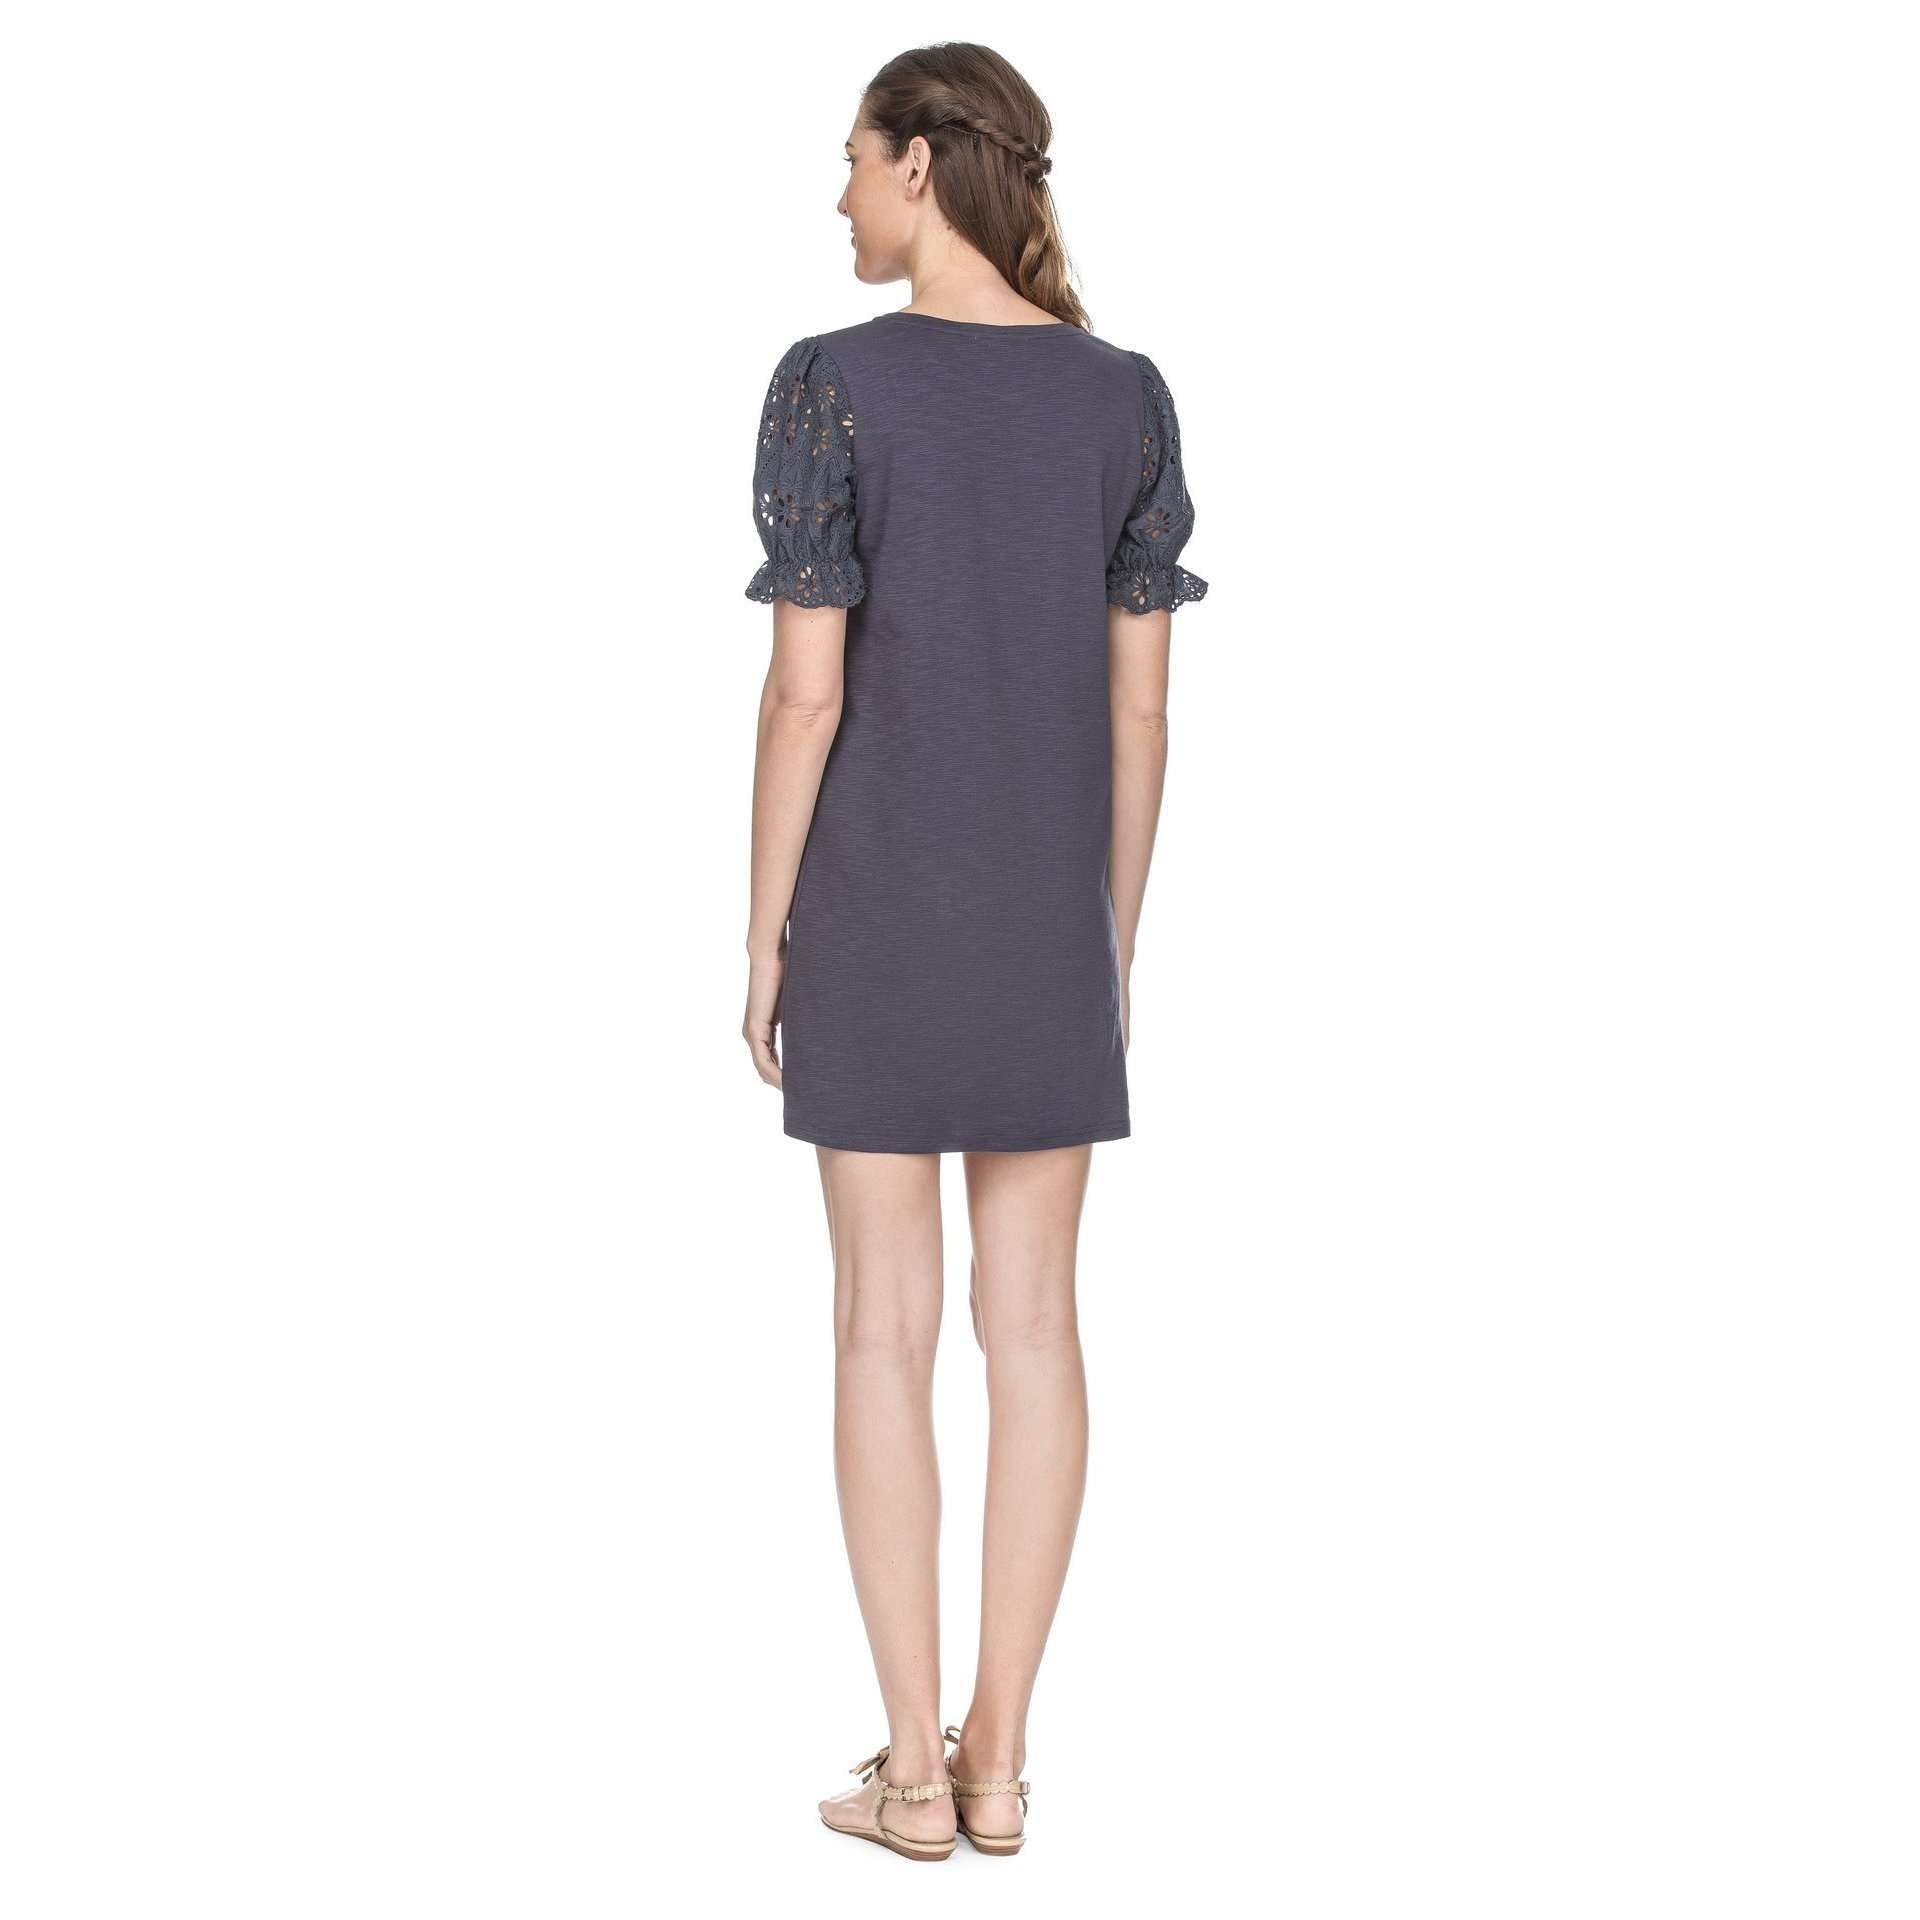 8.28 Boutique:Joy*Joy,Joy*Joy Navy Eyelet Sleeve Dress,Dress